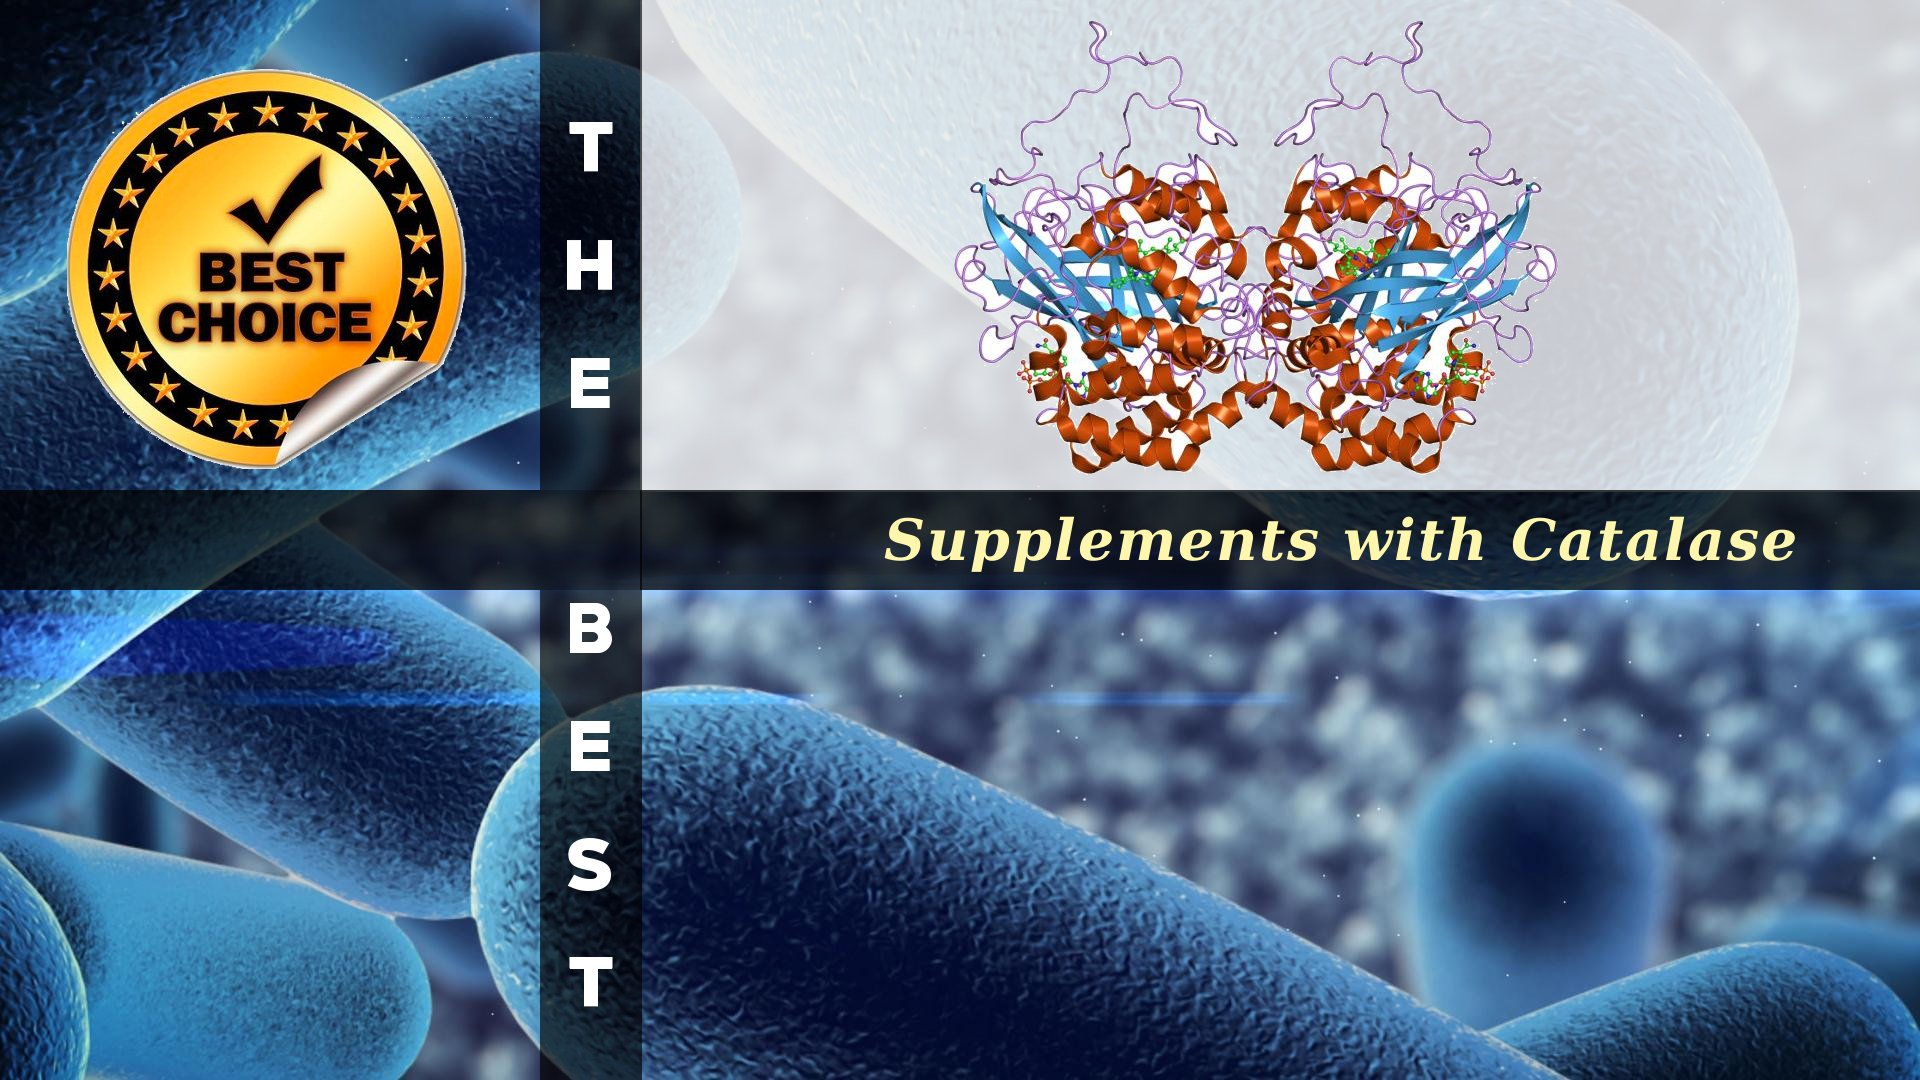 The Supplements with Catalase